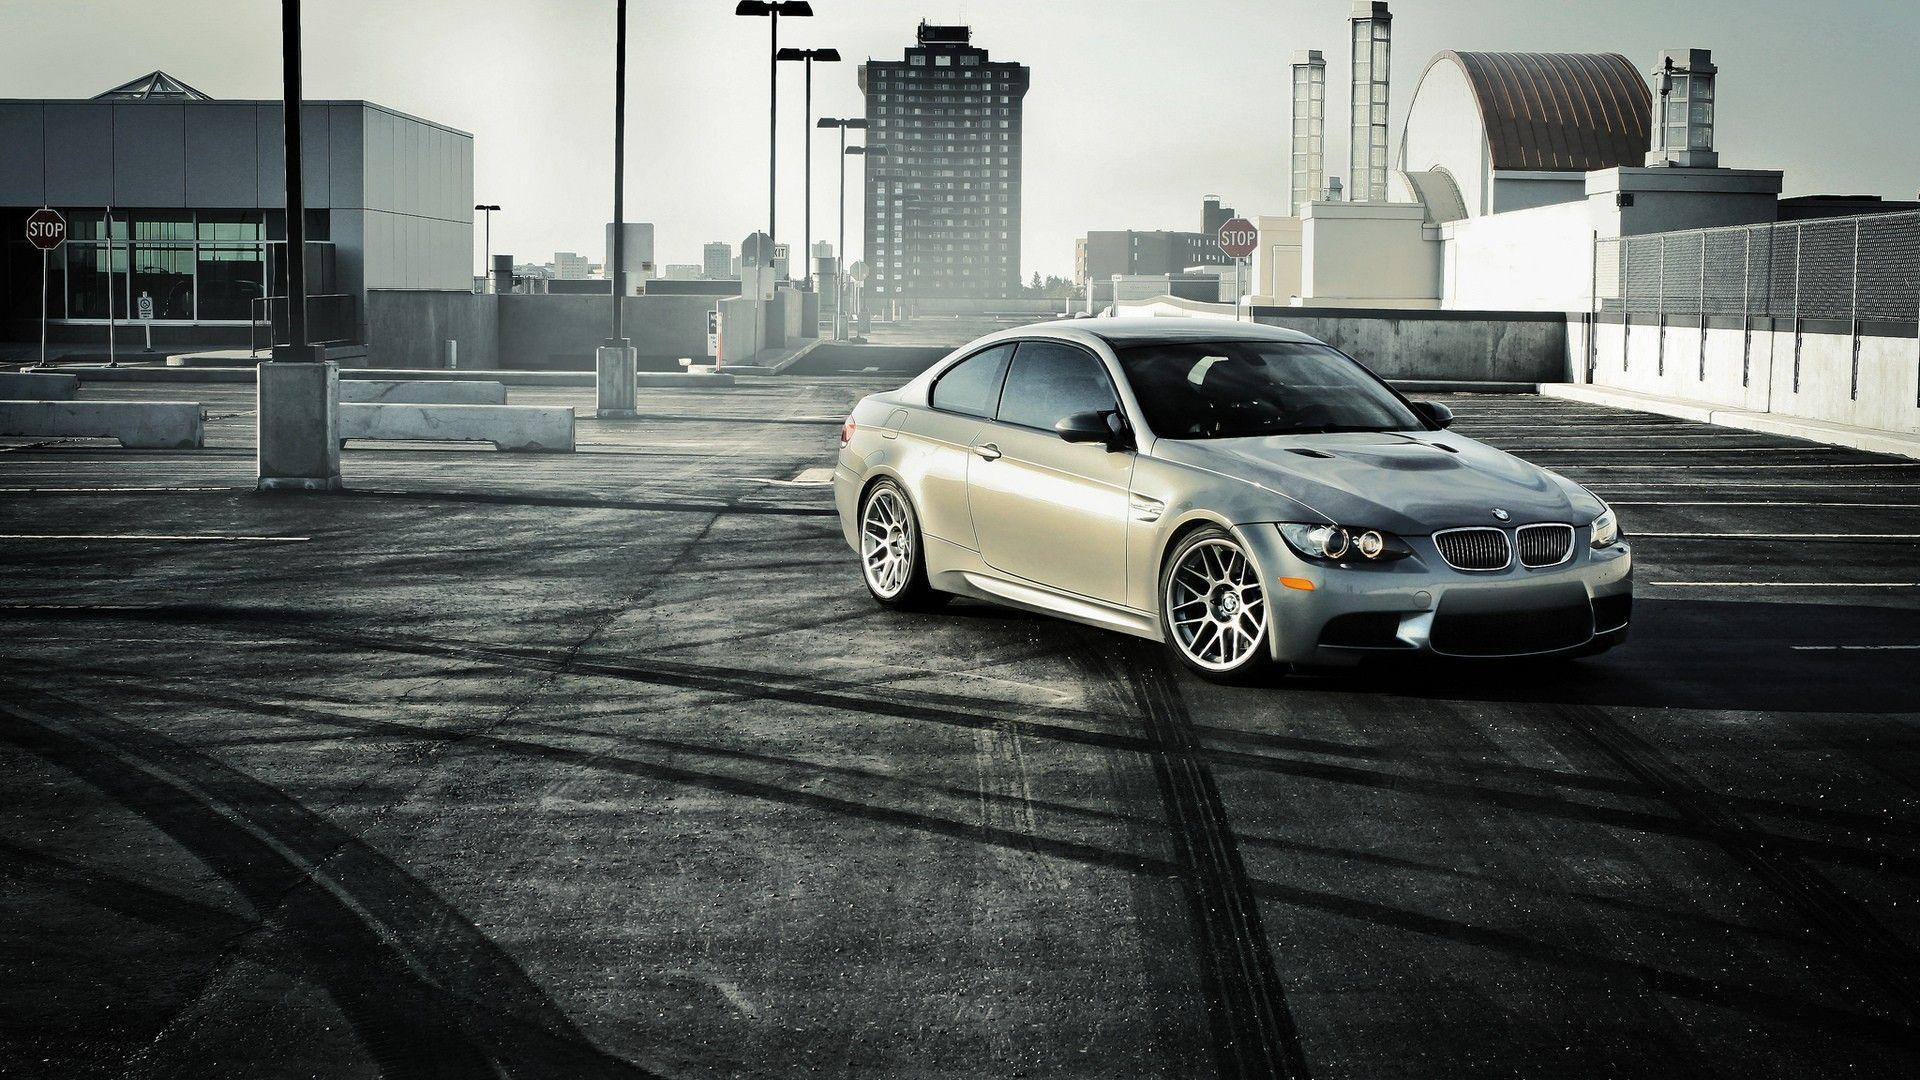 Cars Bmw M3 Backgrounds Wallpapers 18929 Full HD Wallpapers Desktop